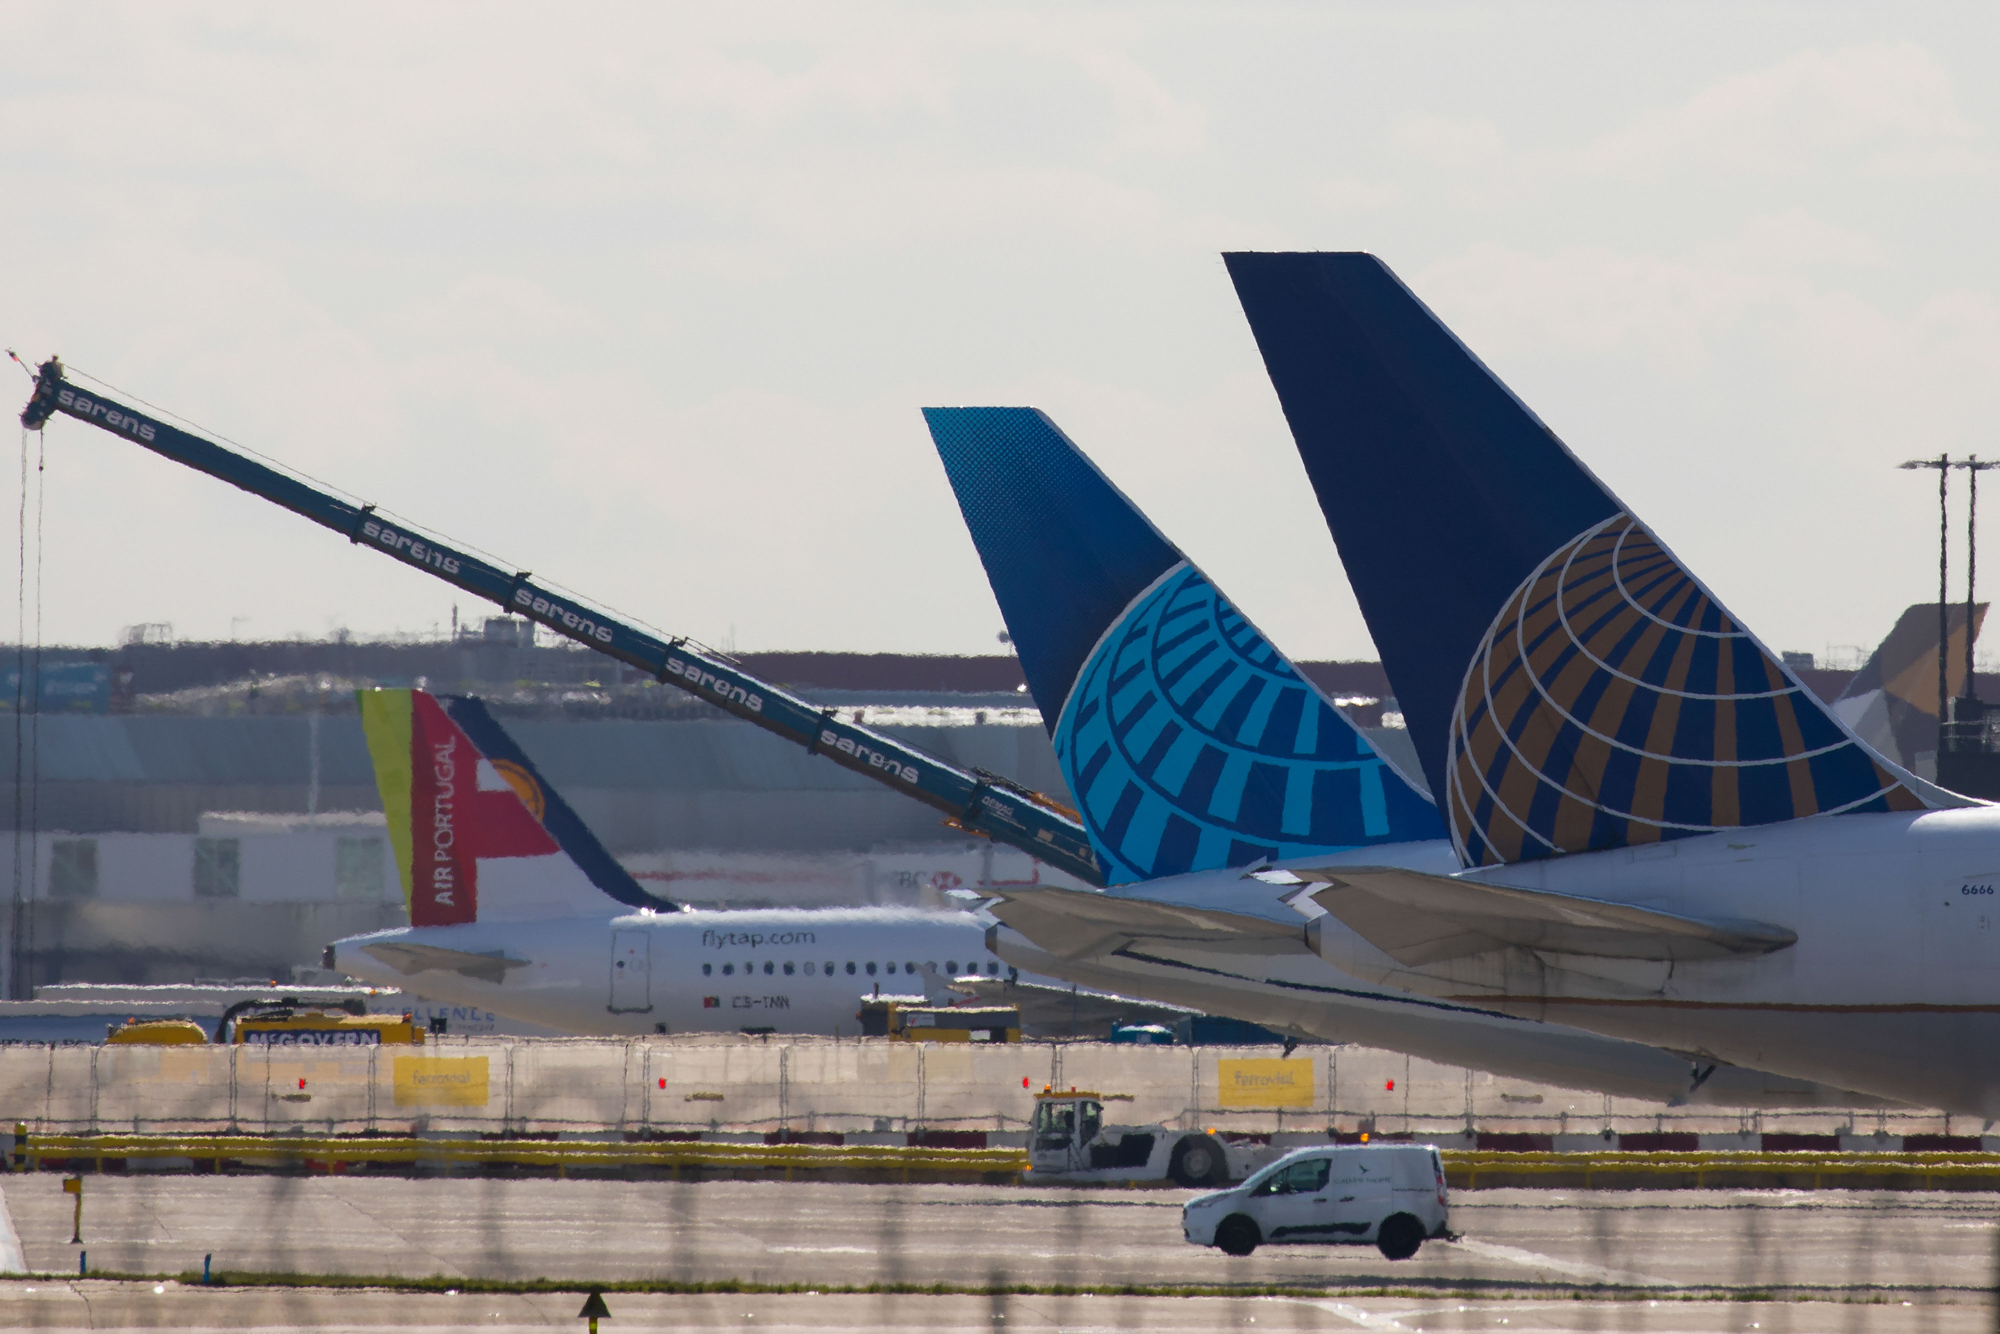 United Airlines airplanes sit on the tarmac at London Heathrow Airport in London on March 16.